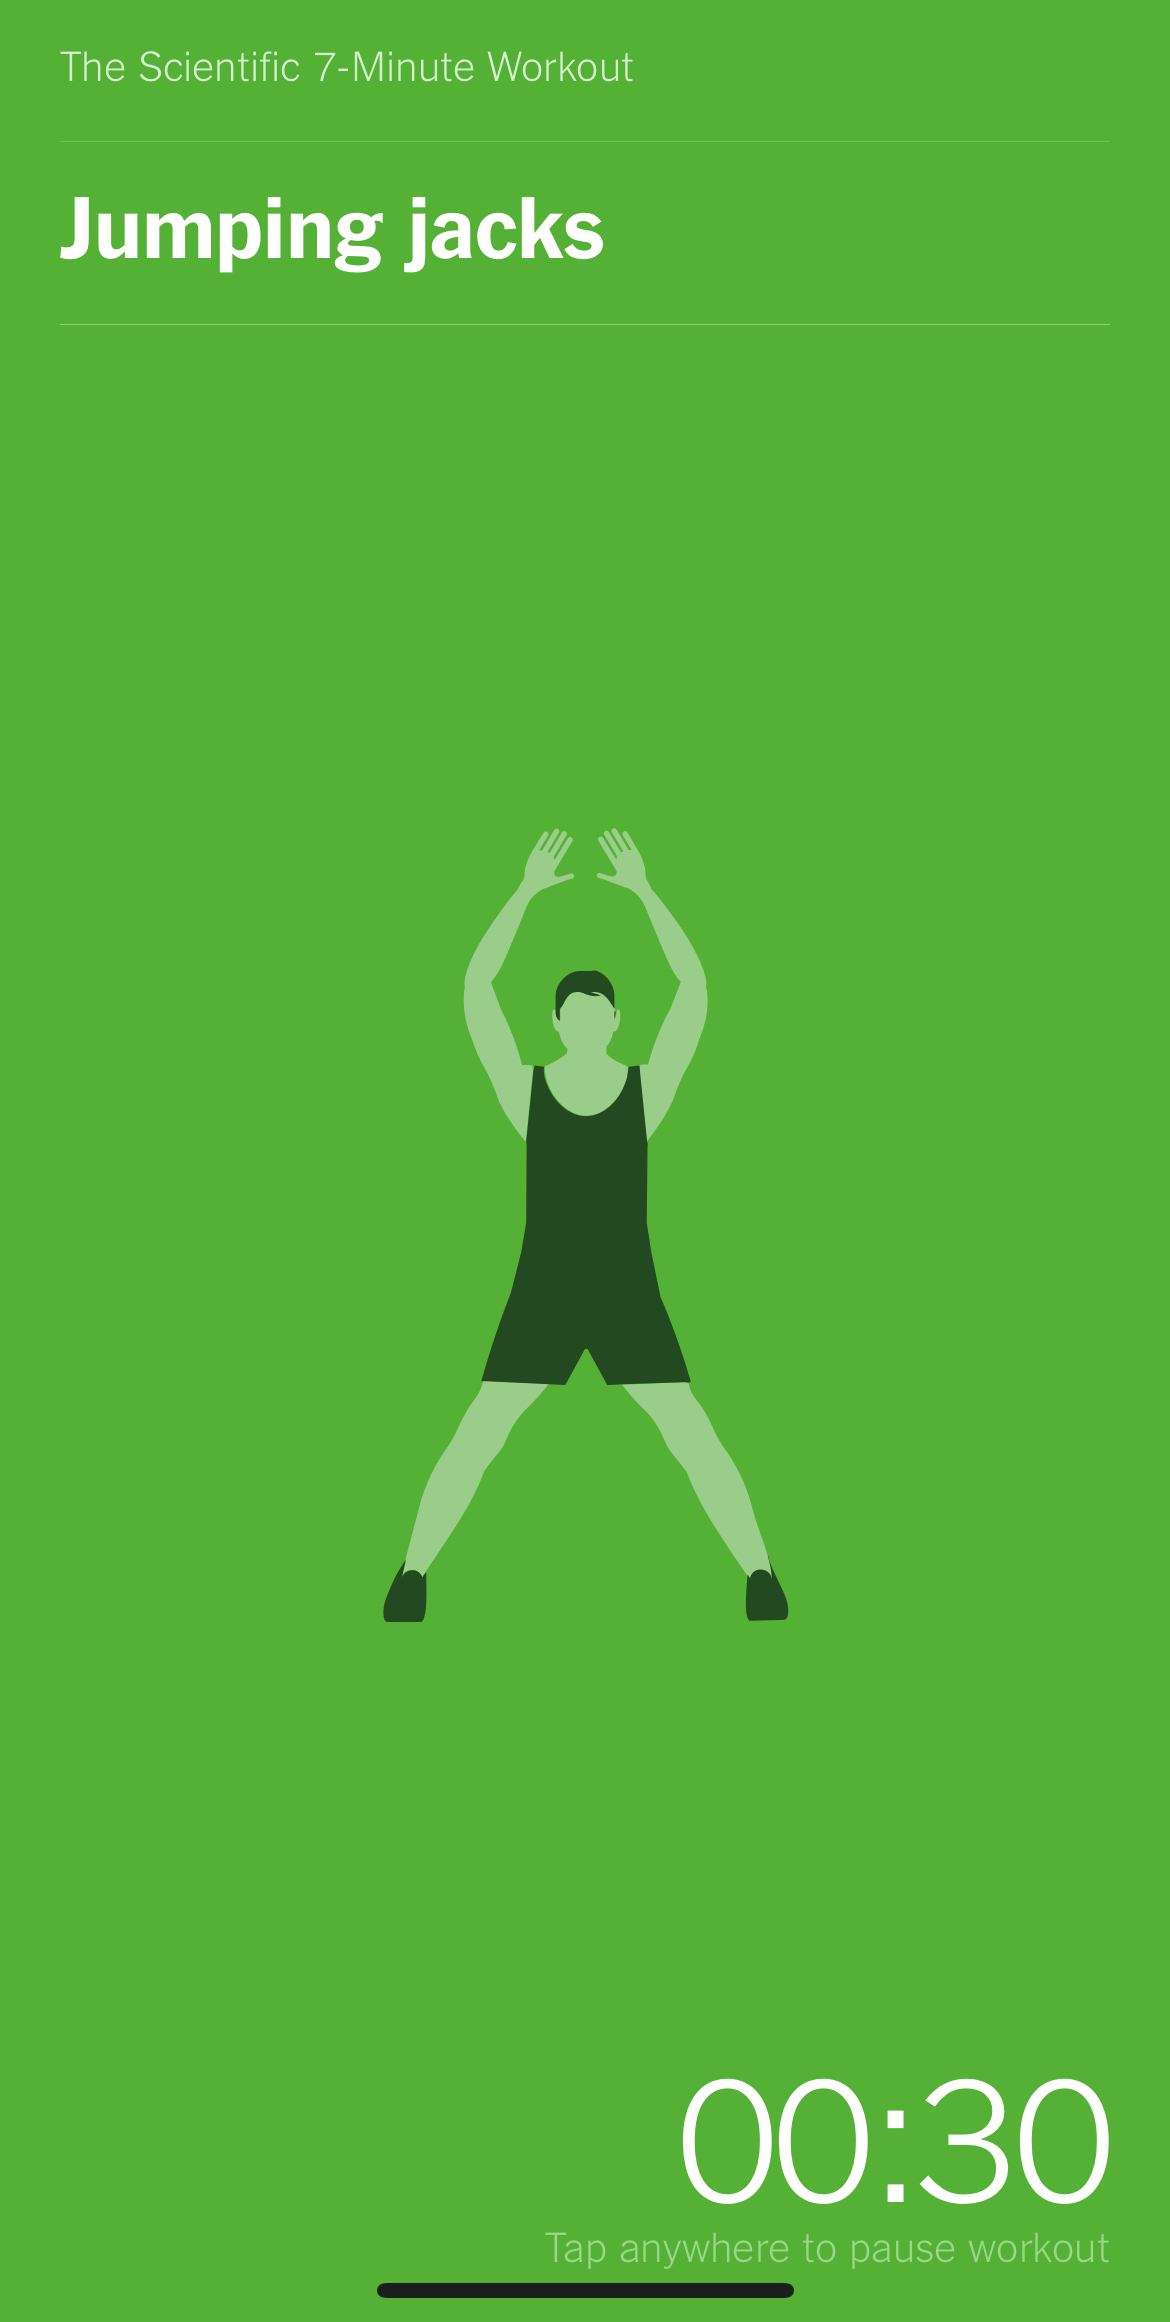 NY Times article based workout